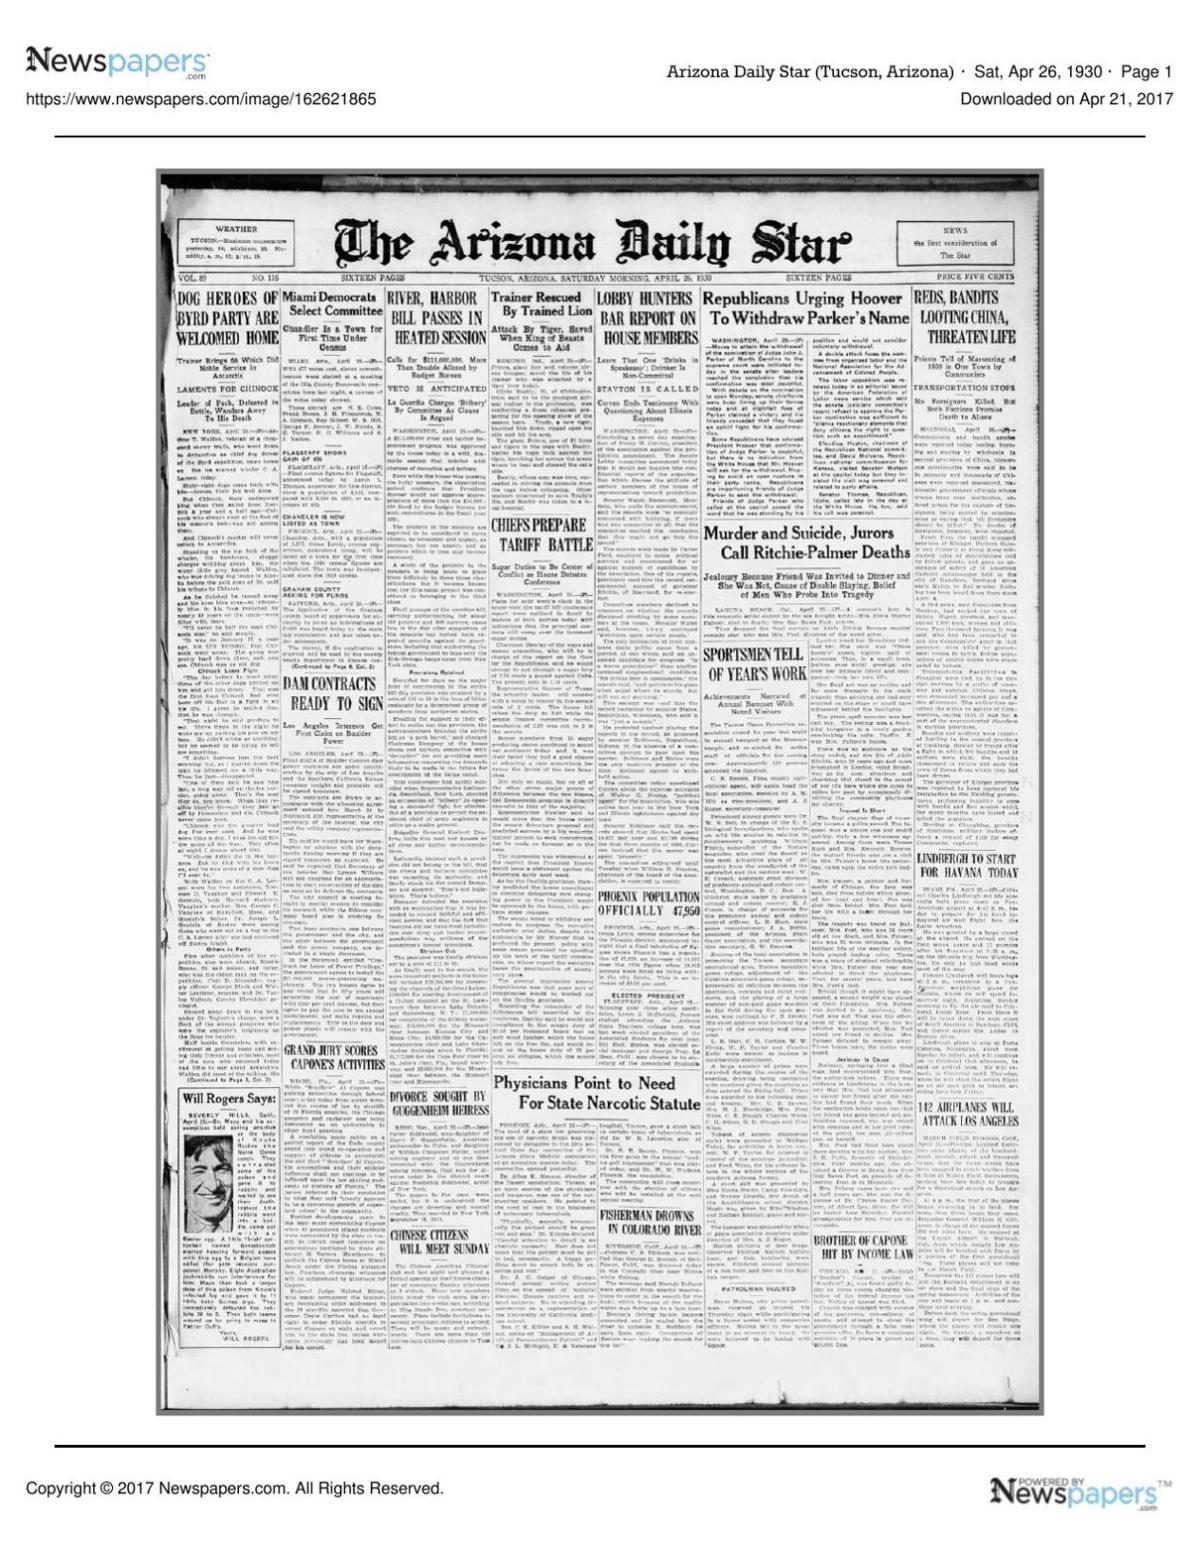 Arizona Daily Star front page April 26, 1930 pdf | | tucson com